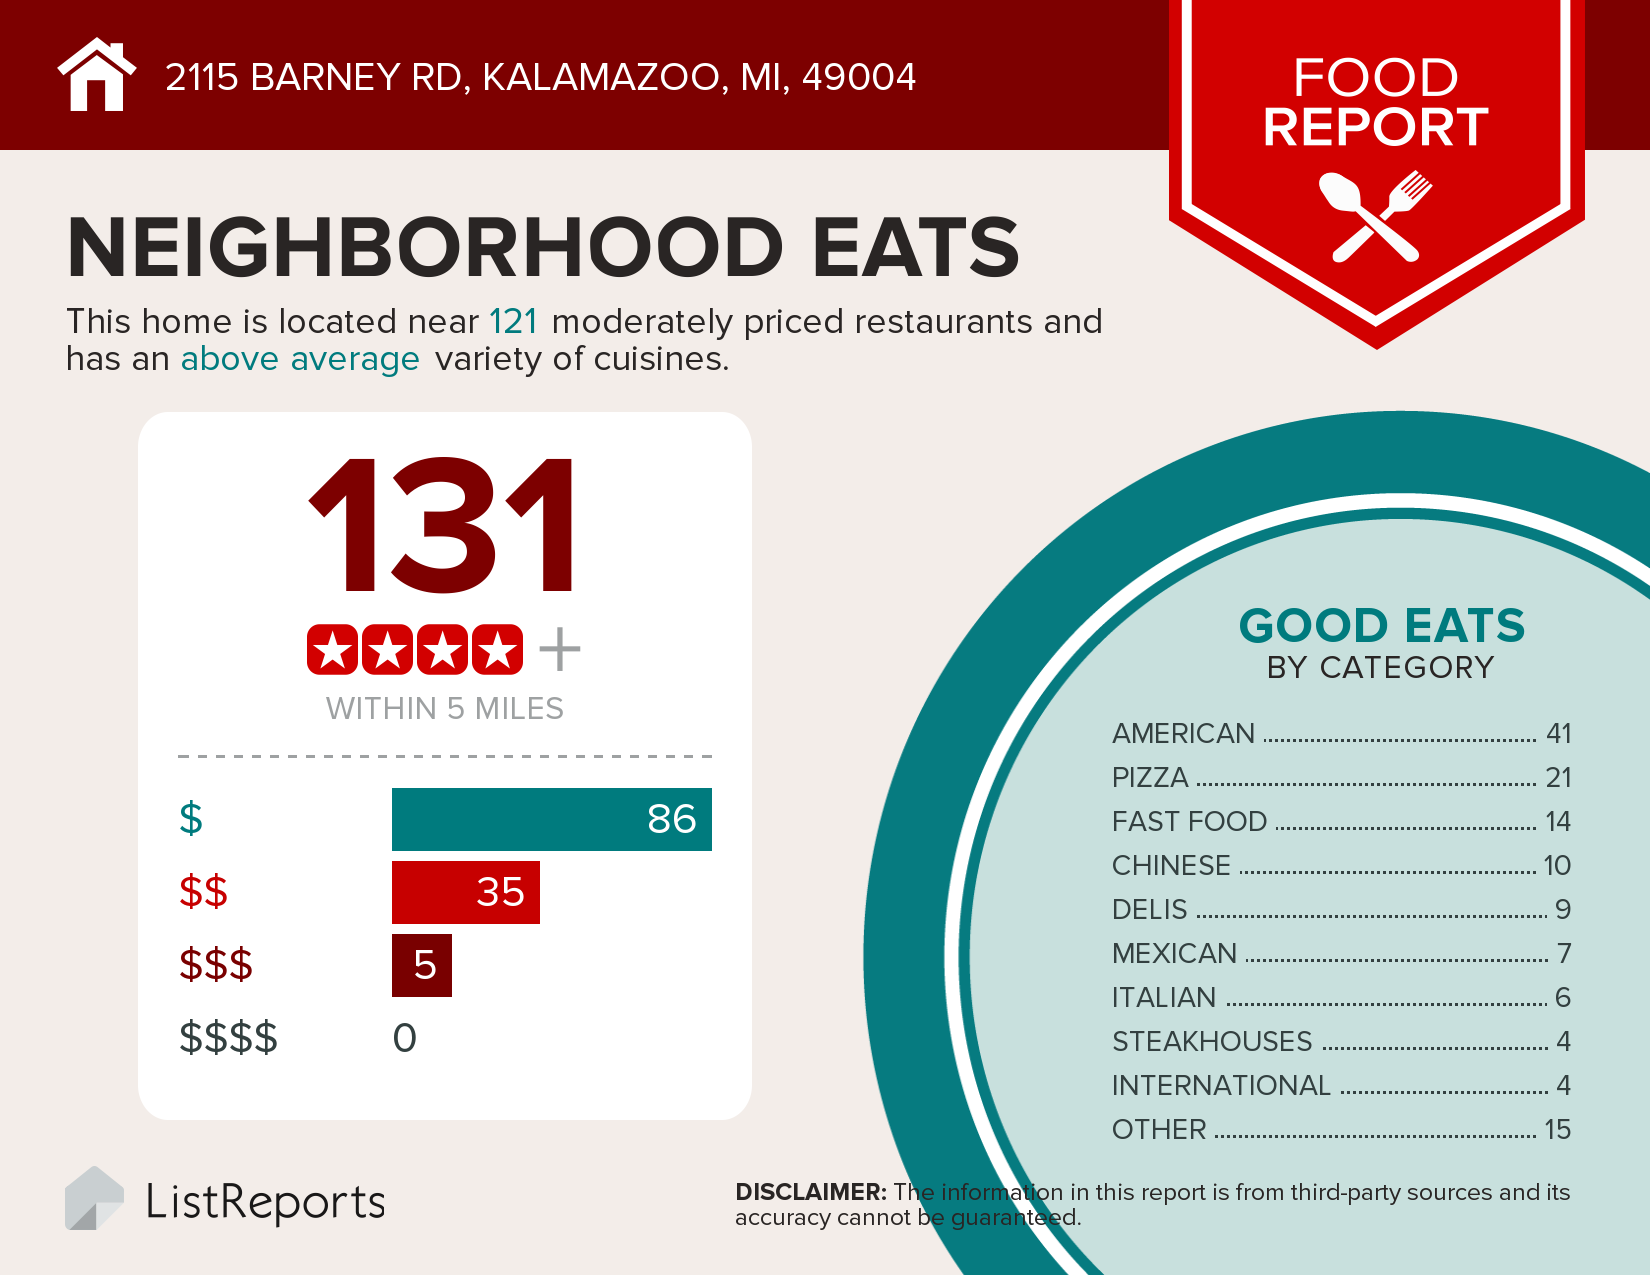 Image of a food report showing there are 131 restaurants within 5 miles of 2115 Barney, Kalamazoo MI